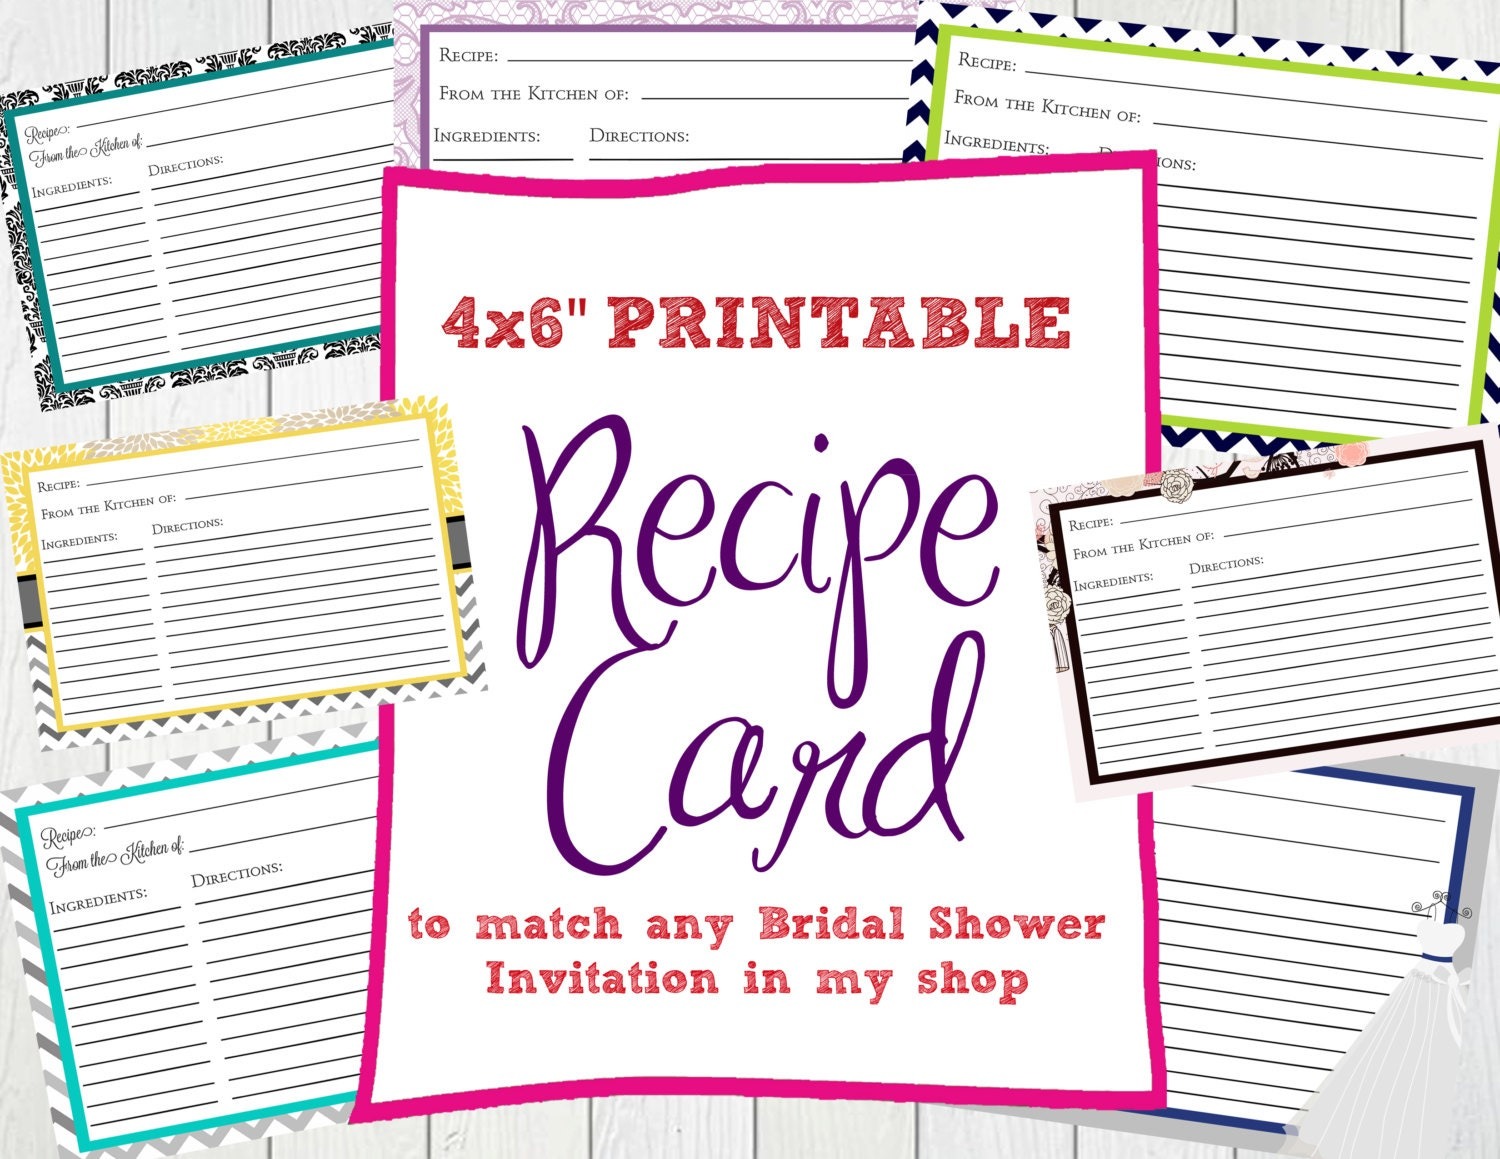 Postcard Wedding Shower Invitations: Recipe Card To Match Bridal Shower Invitation